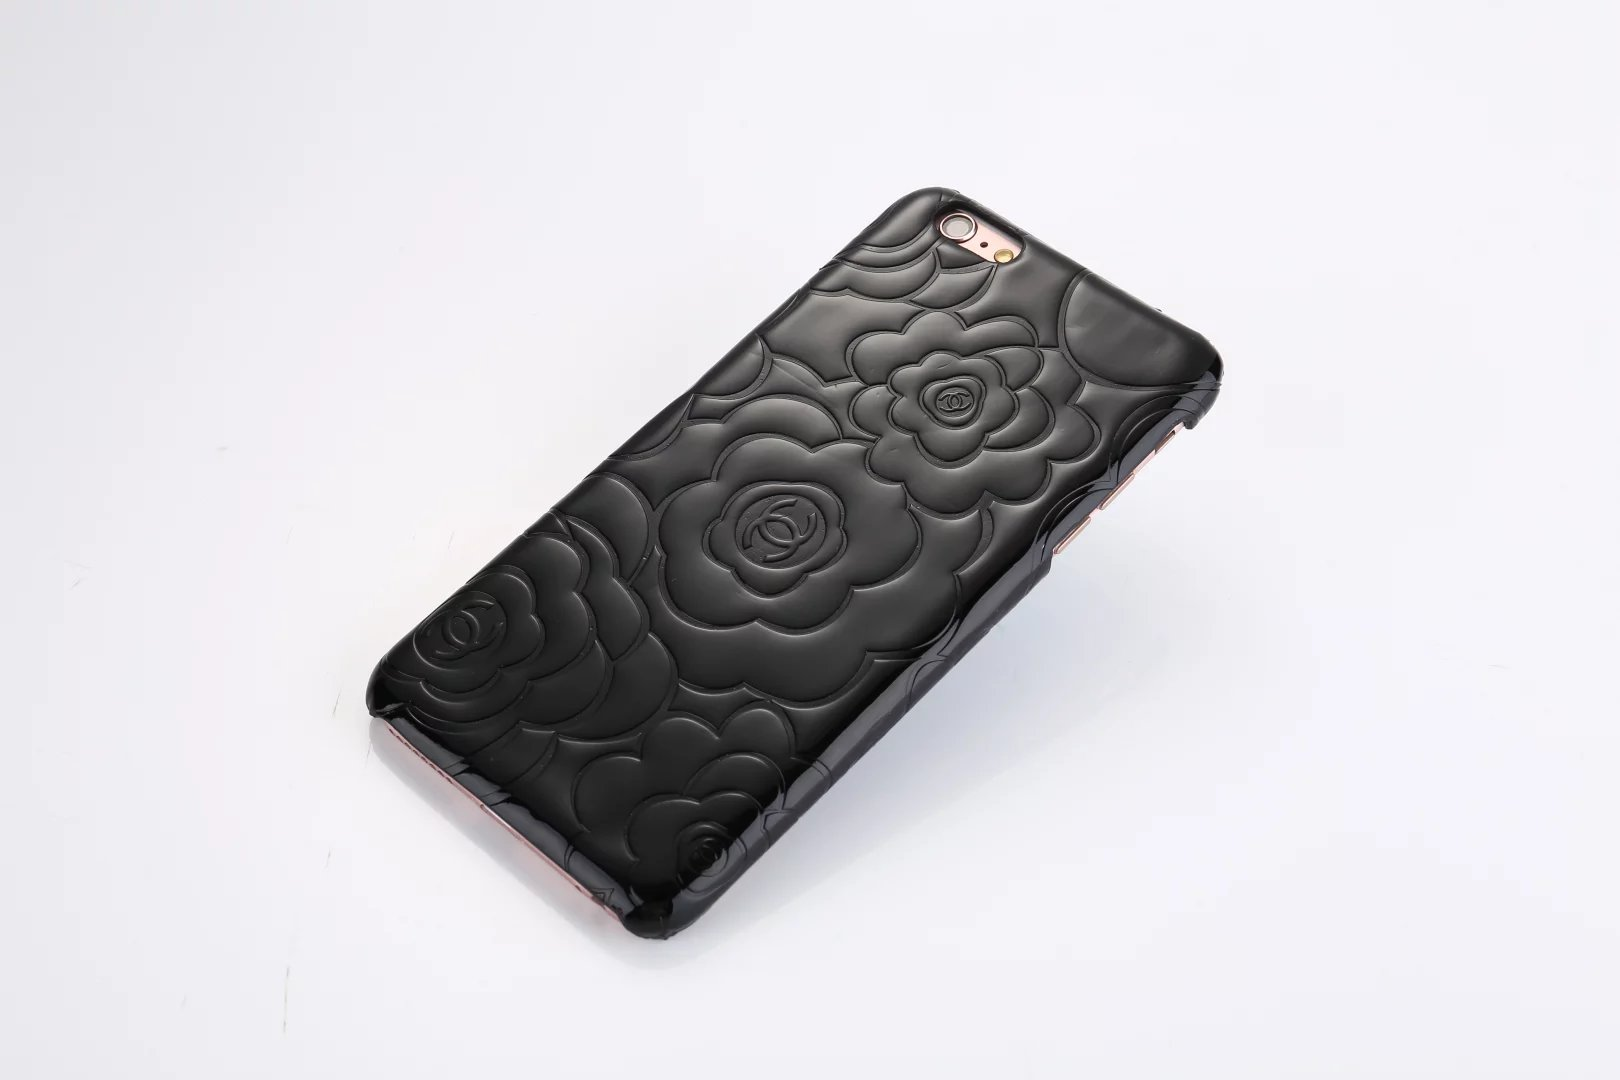 iphone 8 cell phone cases cover for iphone 8 Chanel iphone 8 case order phone cases iphone 8 case best iphone 8 nice cases iphone cell cases 6 iphone case logitech case